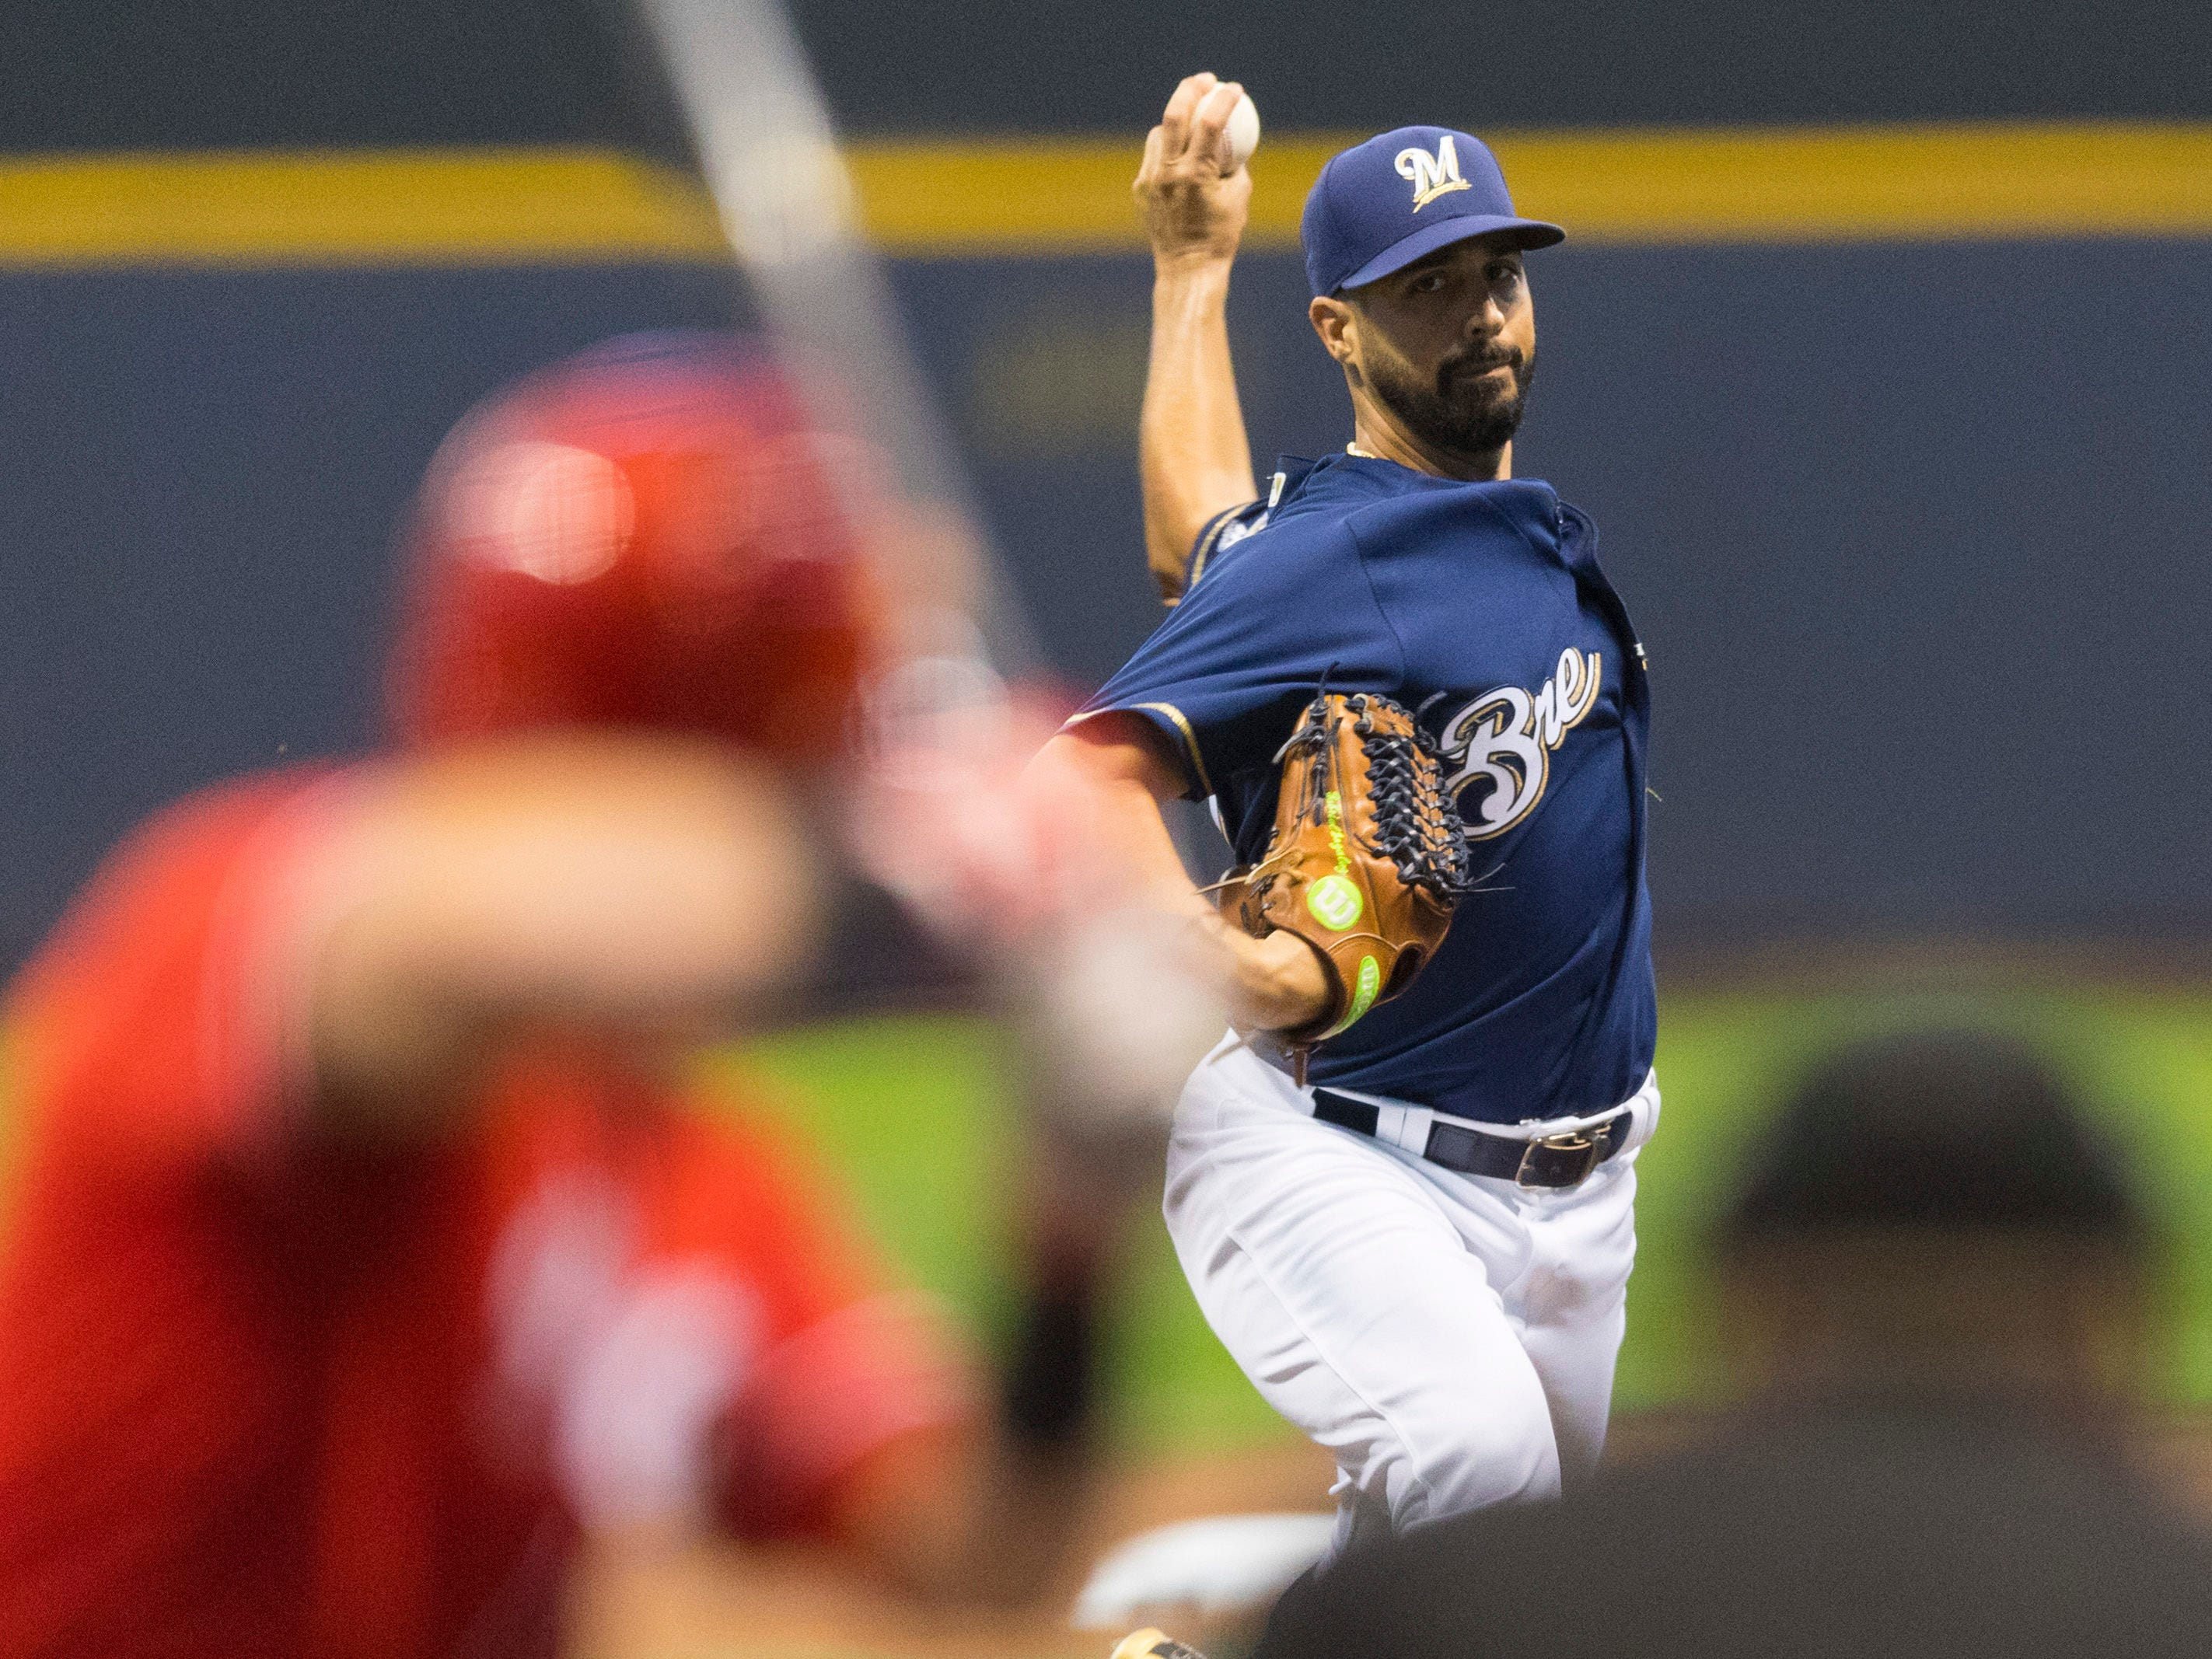 Gio Gonzalez gives the Brewers six shutout innings against the Reds on Wednesday night, allowing just two hits and two walks to go along with five strikeouts.